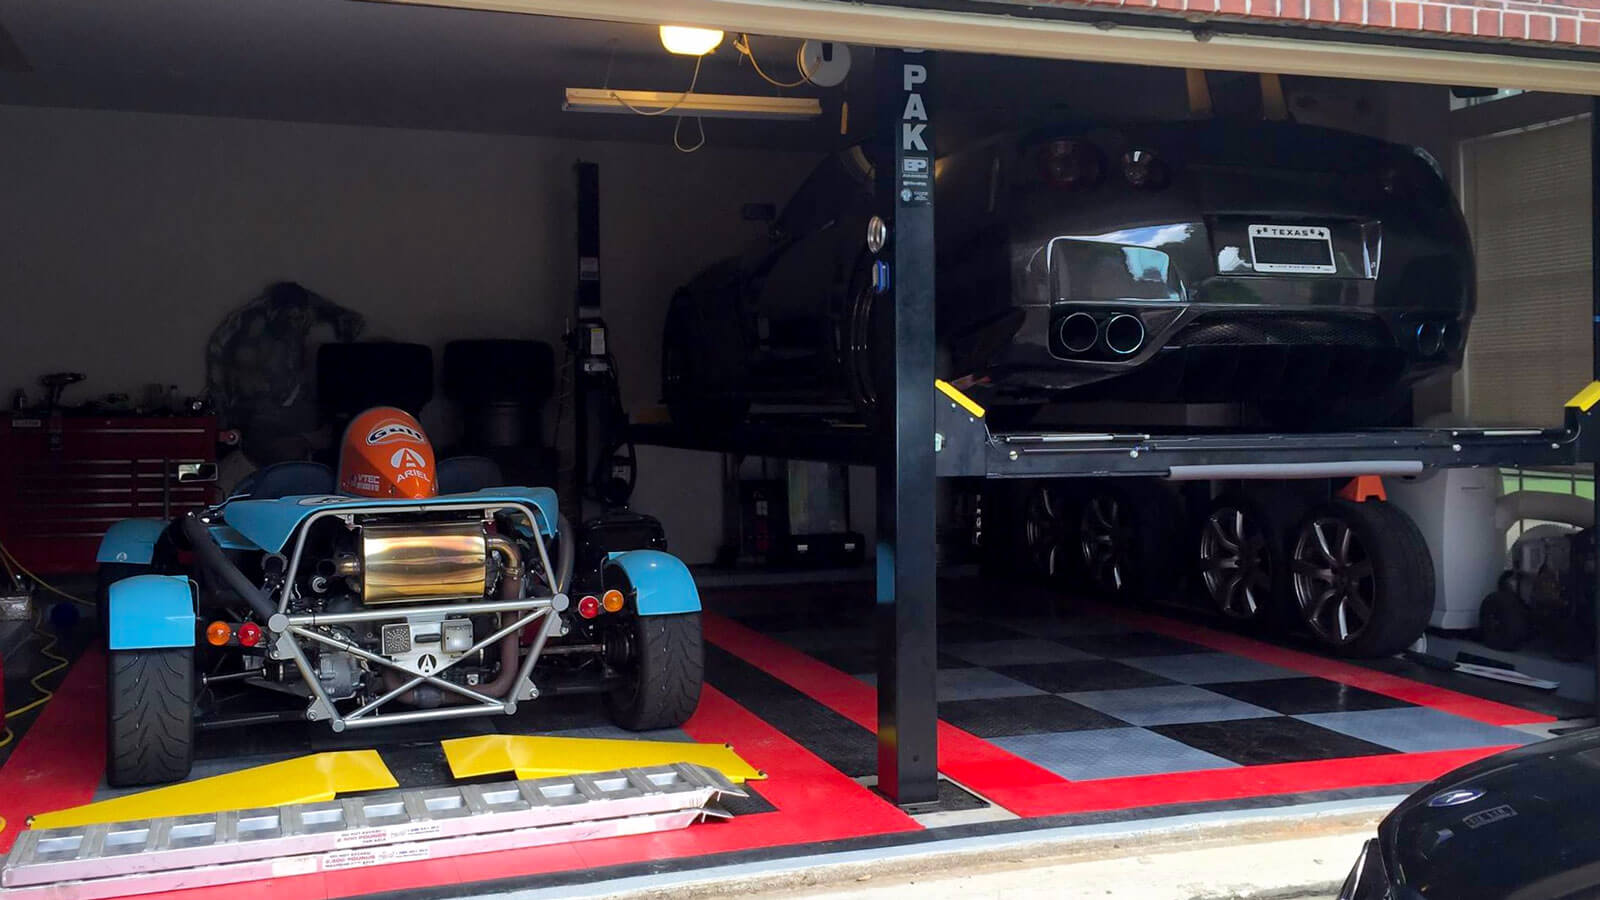 Garage with RaceDeck black, alloy, and red